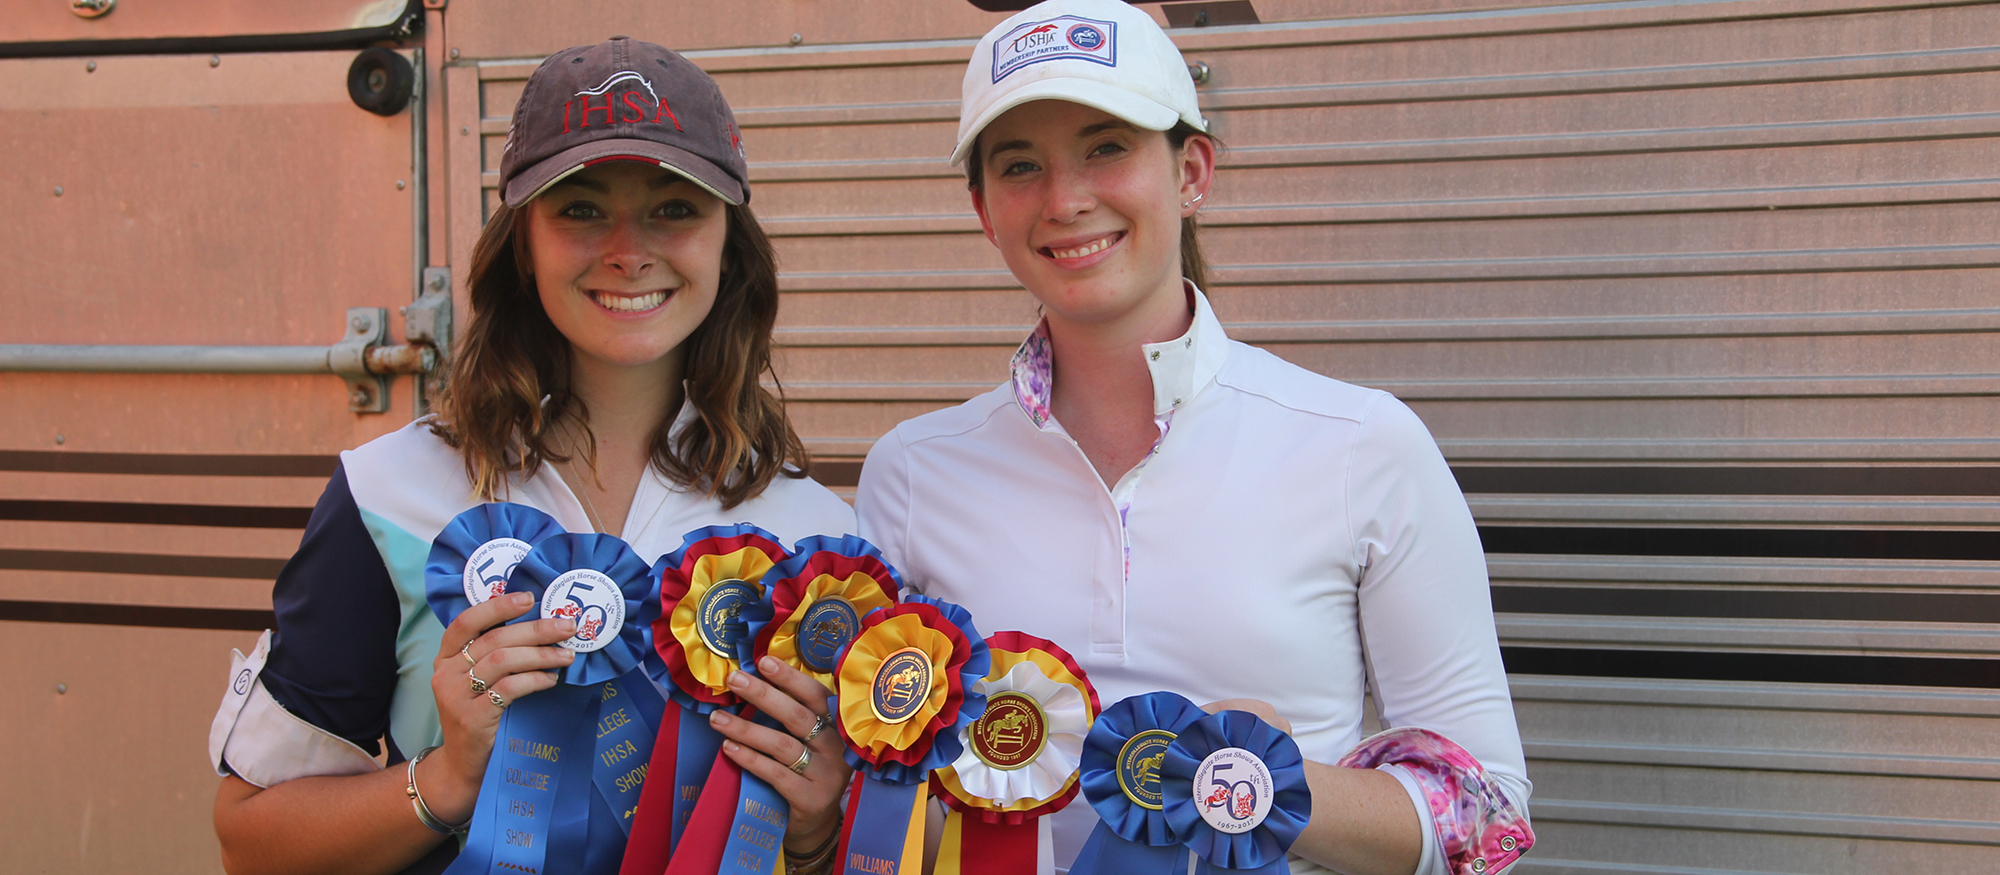 Photo of Lyons riders Sabrina Fox and Anna Rzchowski  displaying their ribbons from MHC's win at the Williams Show on October 14, 2017.